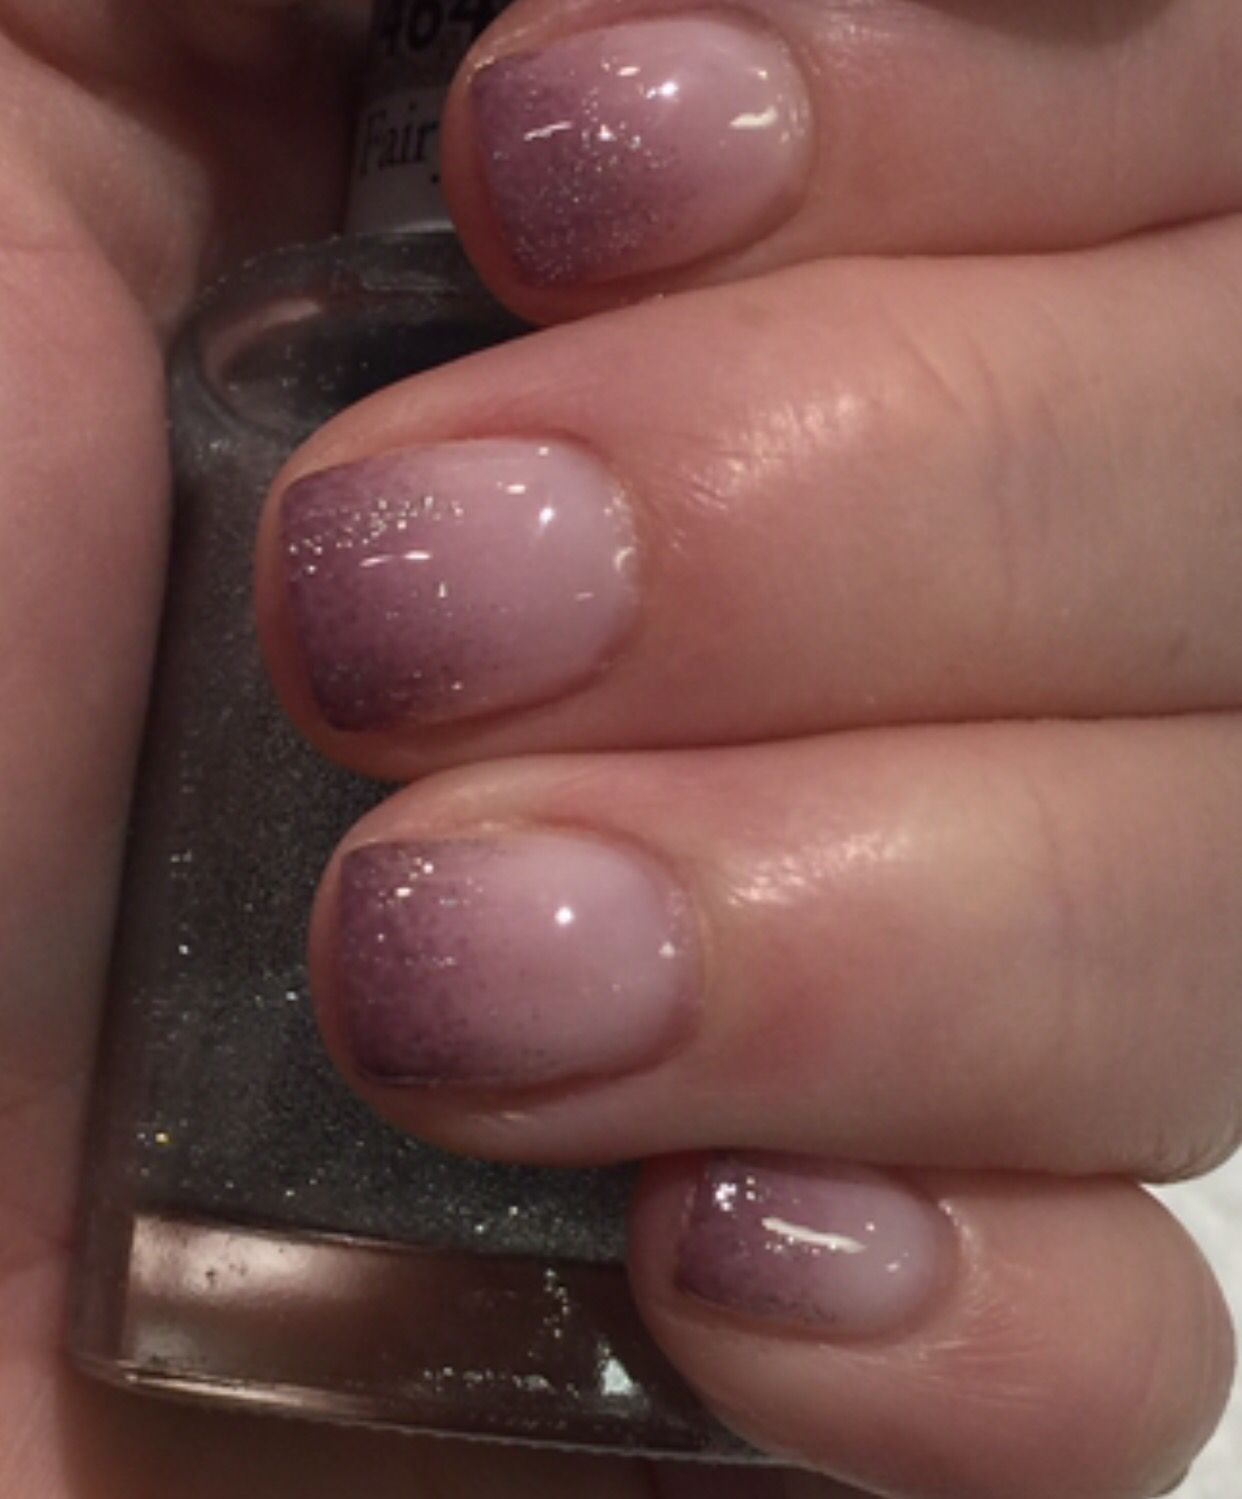 Mauve Ombré Nails by Tina Le Nail Elegance, Willow Glen, CA ...